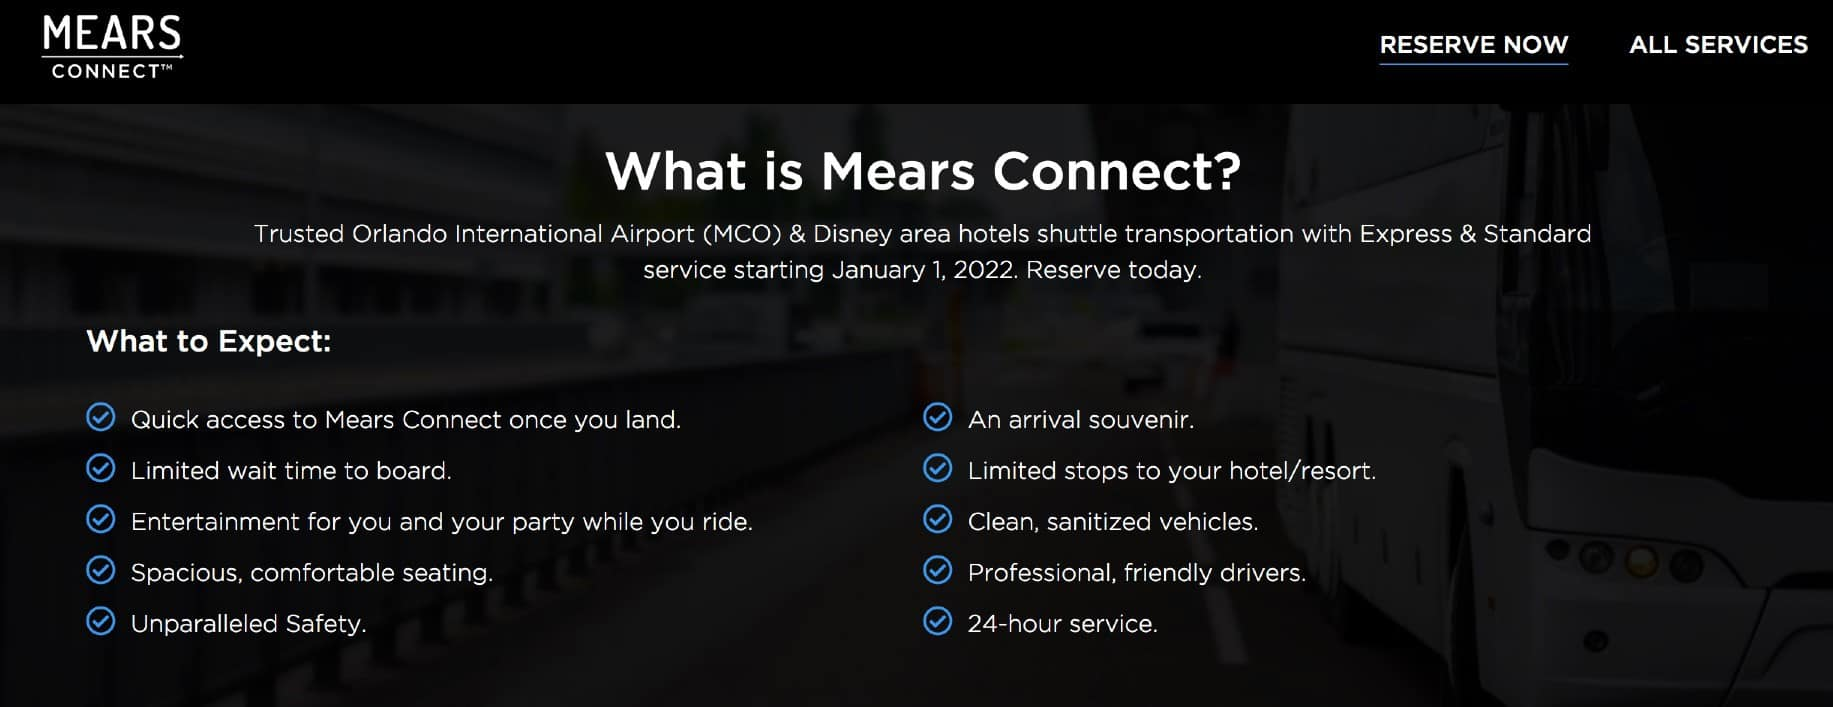 mears connect offerings